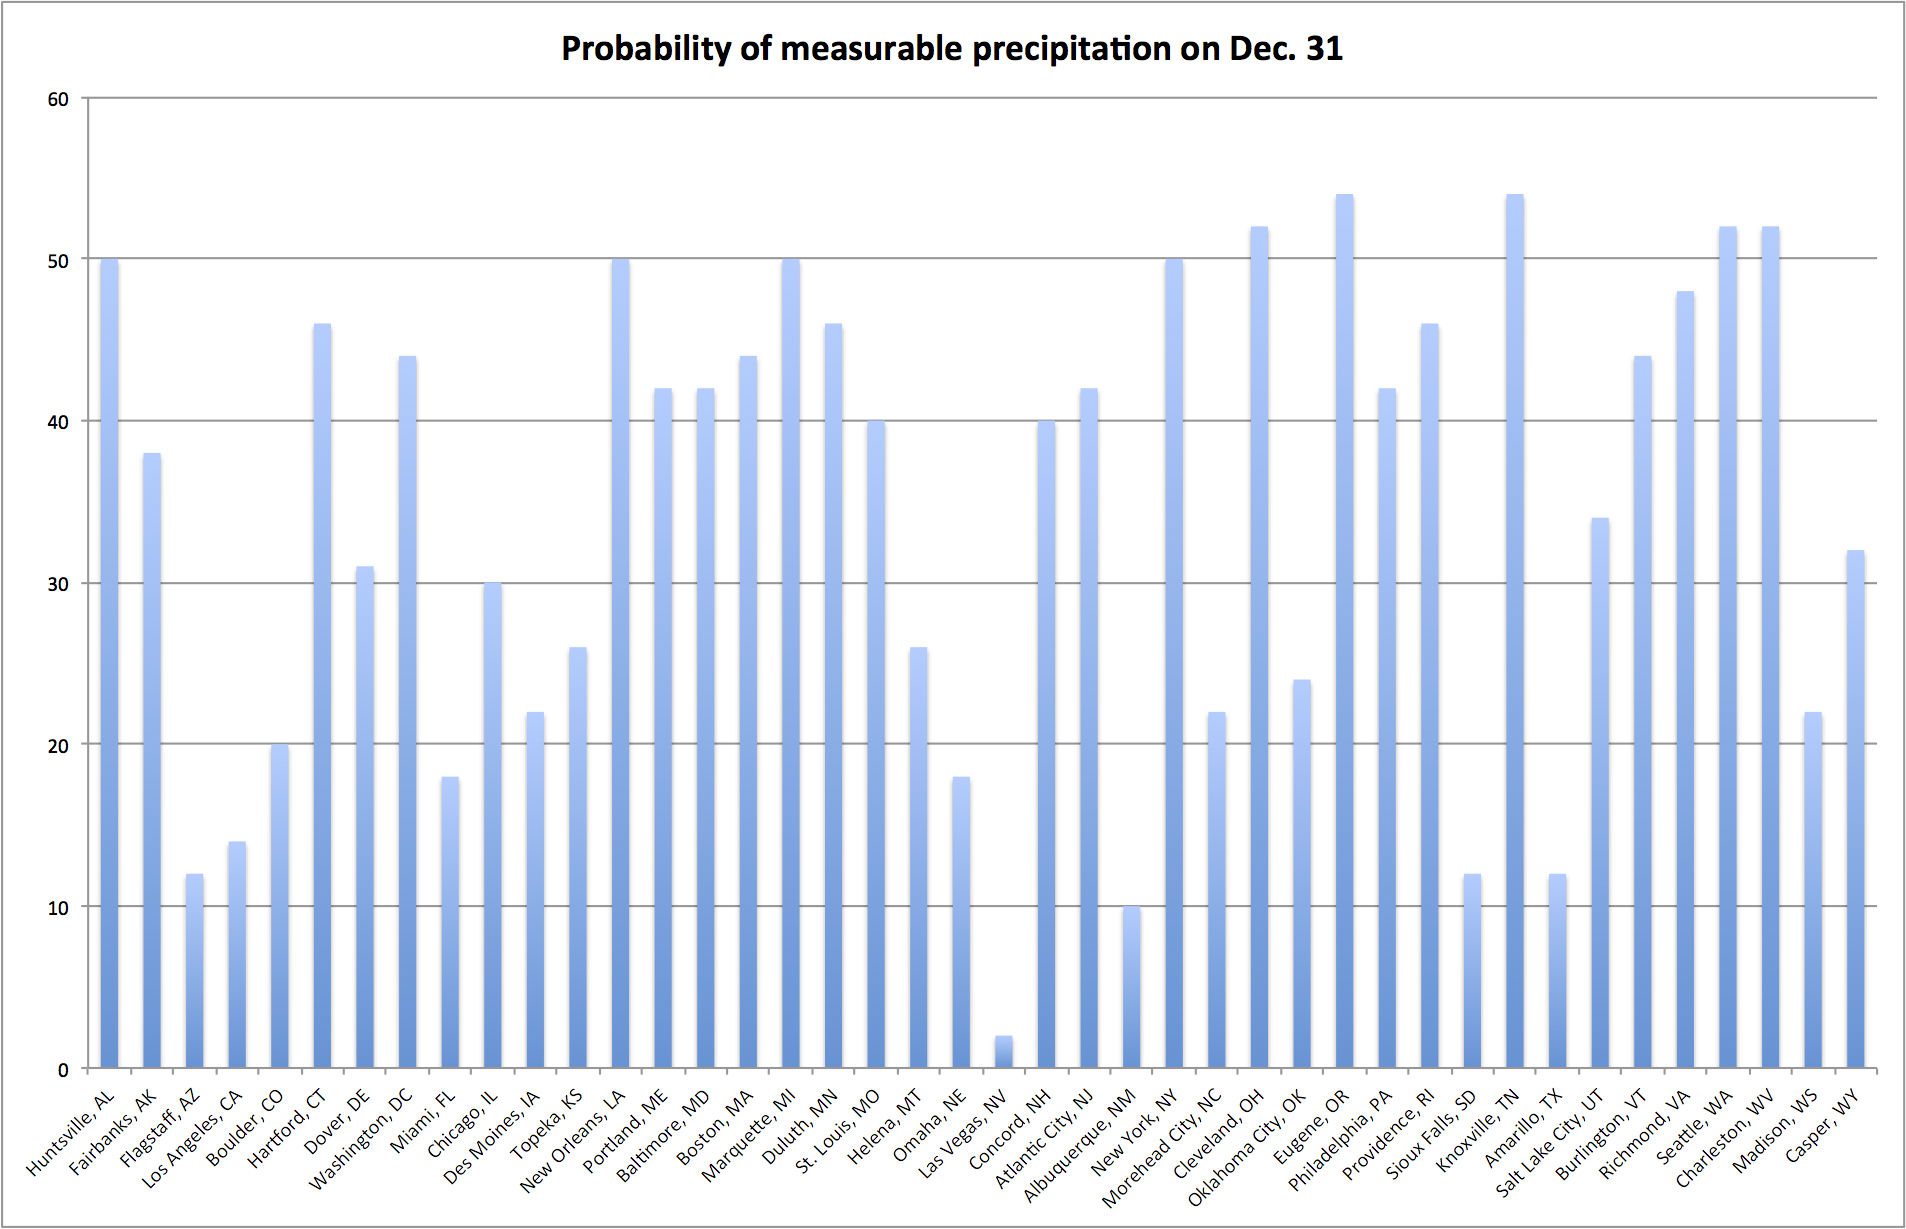 US - Probability of New Year's Eve precip